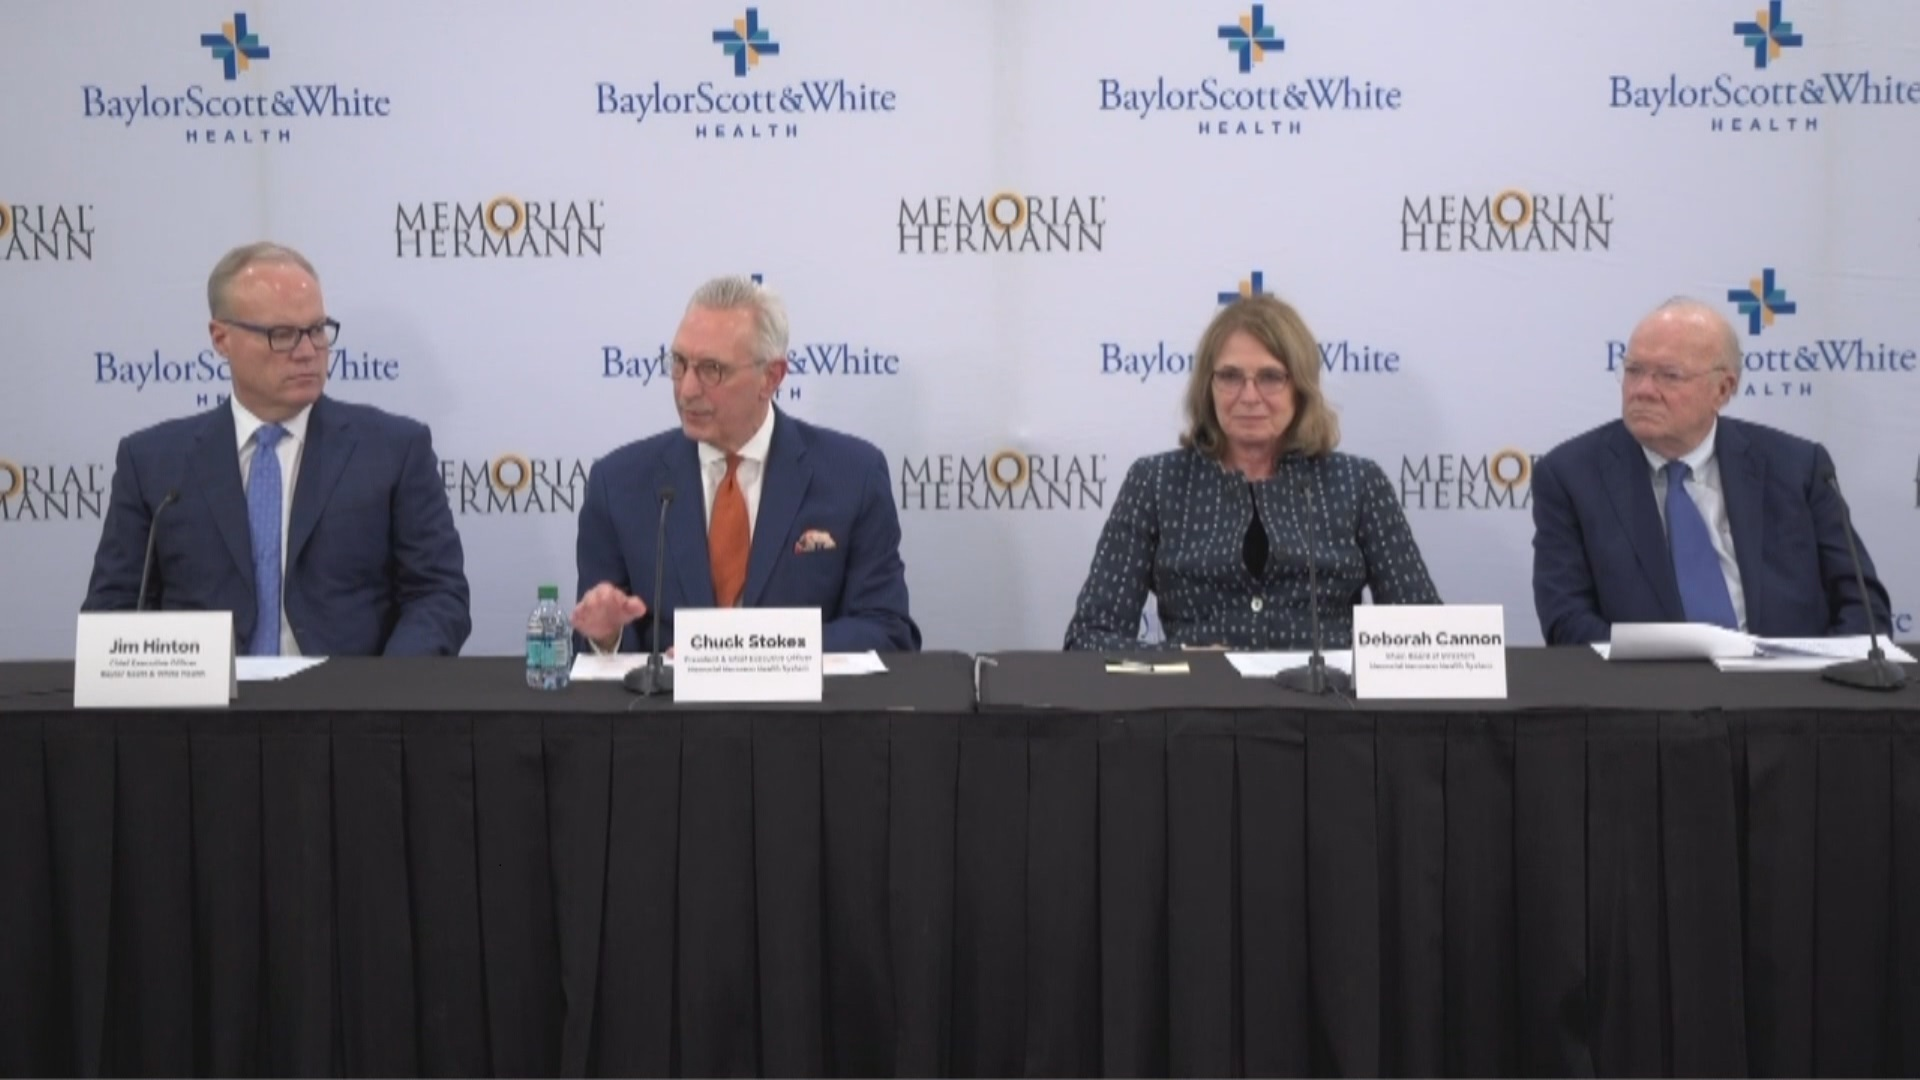 Officials announce merger of Baylor Scott & White and Memorial Hermann Health System